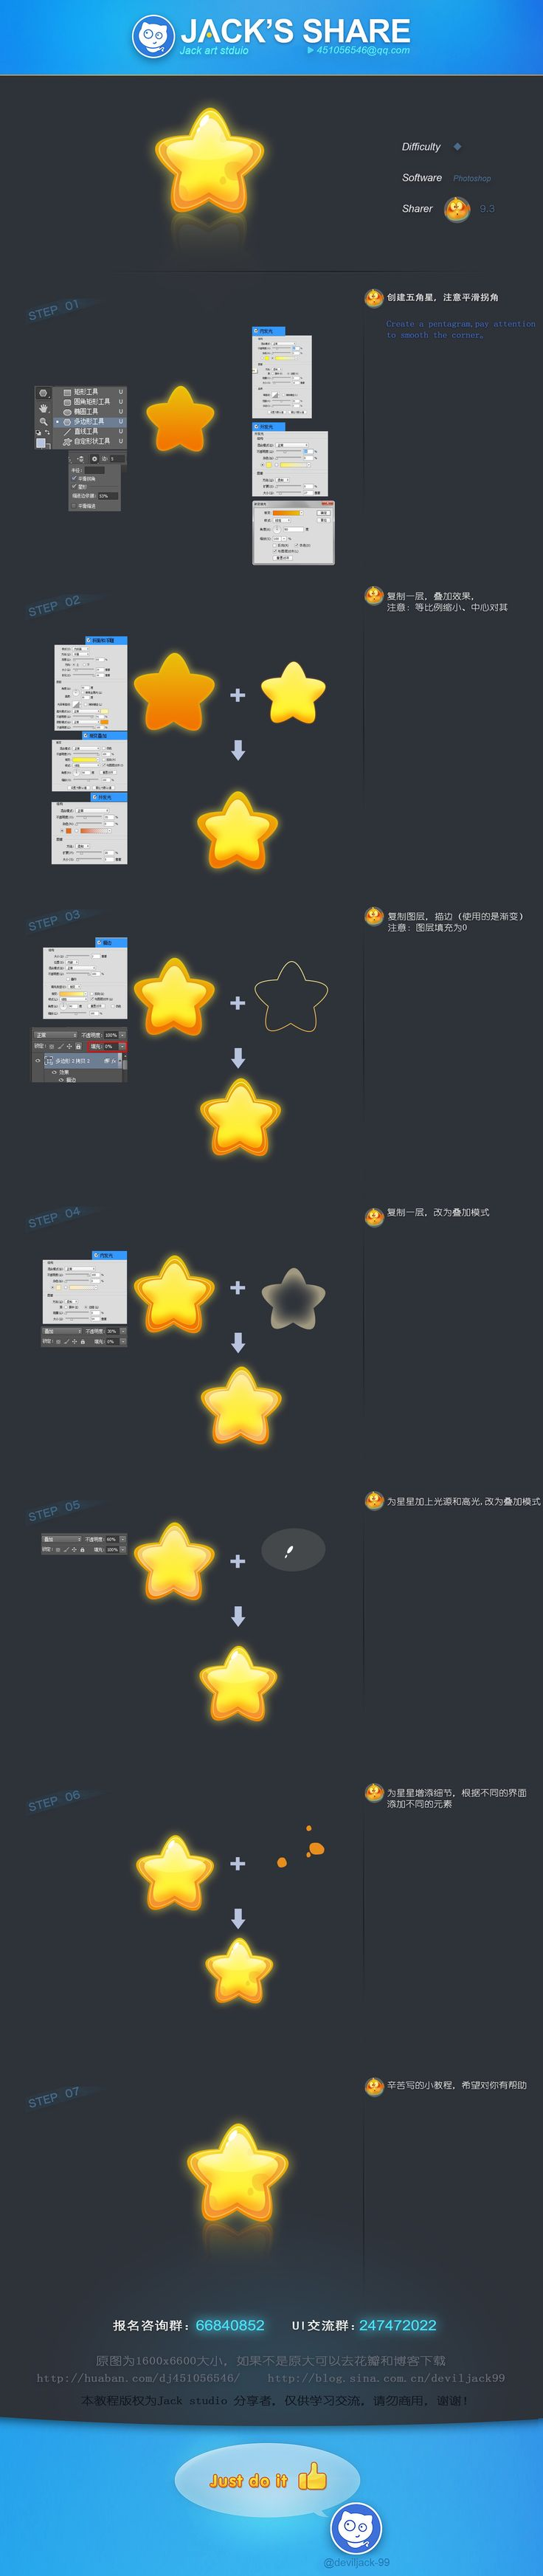 (gameui/gui/ui/icon/interface/logo/design/share图标/界面/教程/游戏设计/ui交流群 524943287/ui报名群66840852) http://blog.sina.com.cn/deviljack99  http://weibo.com/u/2796854547 http://i.youku.com/Deviljack99